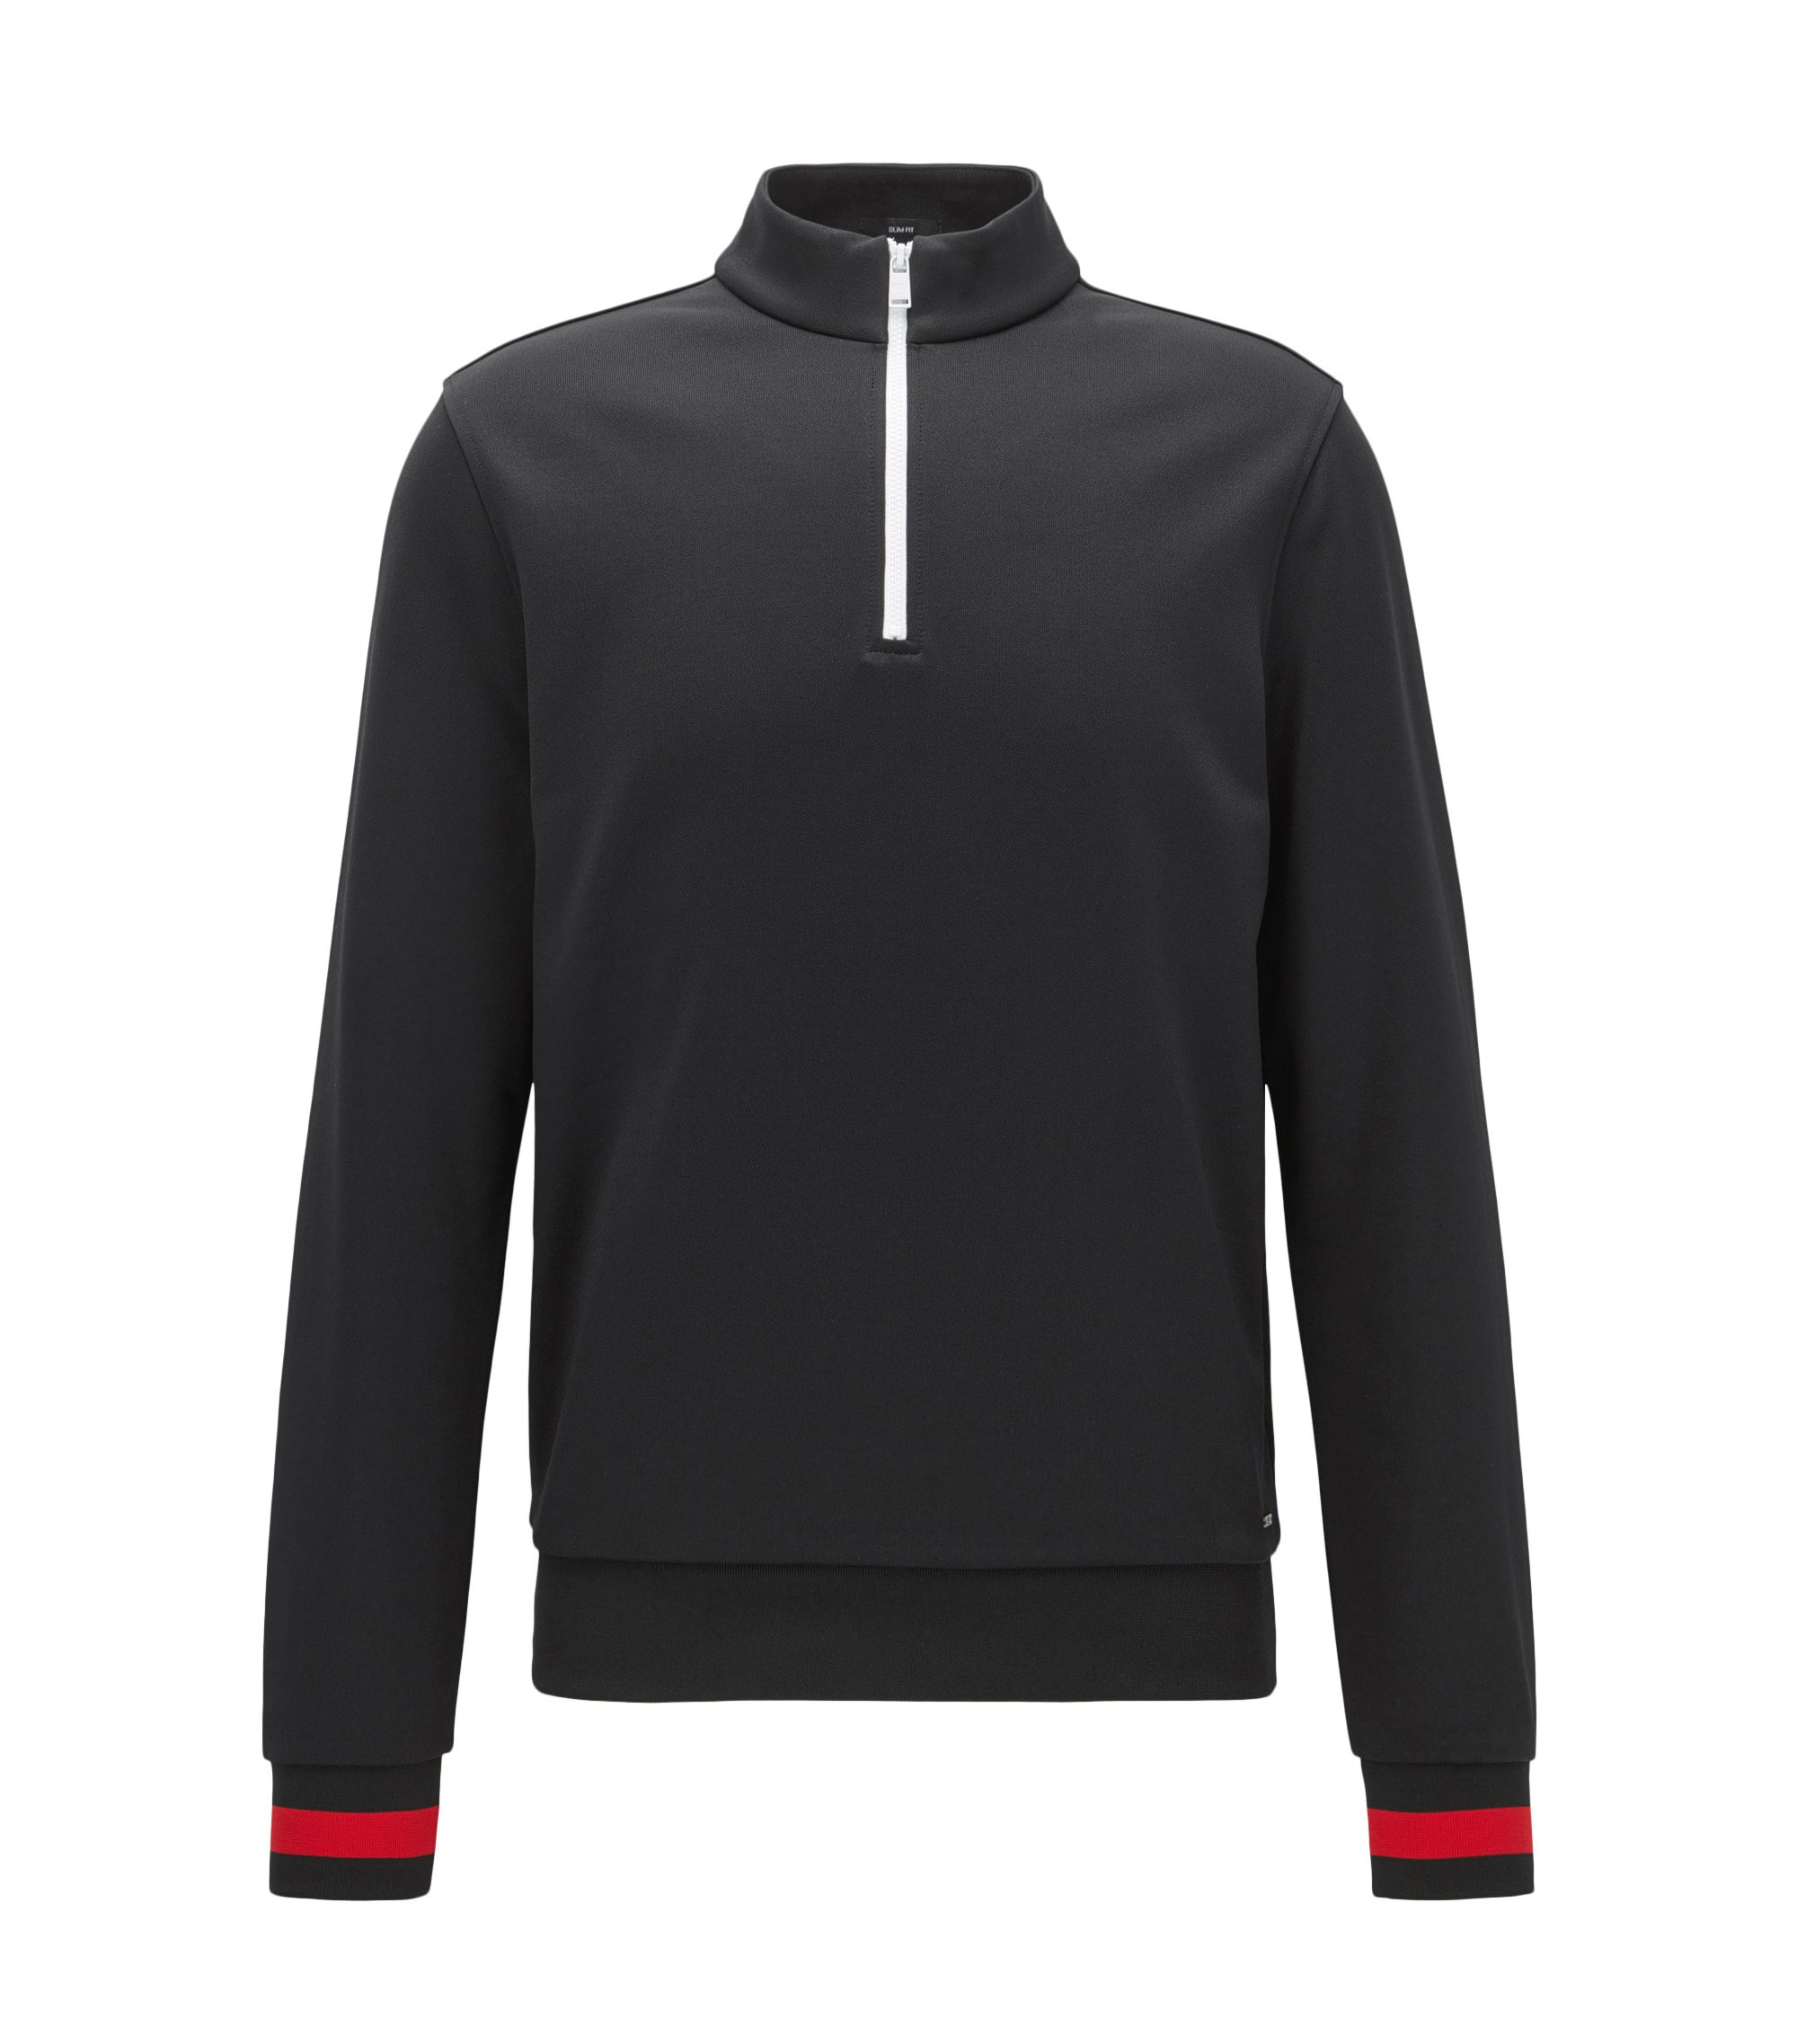 Zip-neck sweatshirt in a technical fabric with contrast details, Black